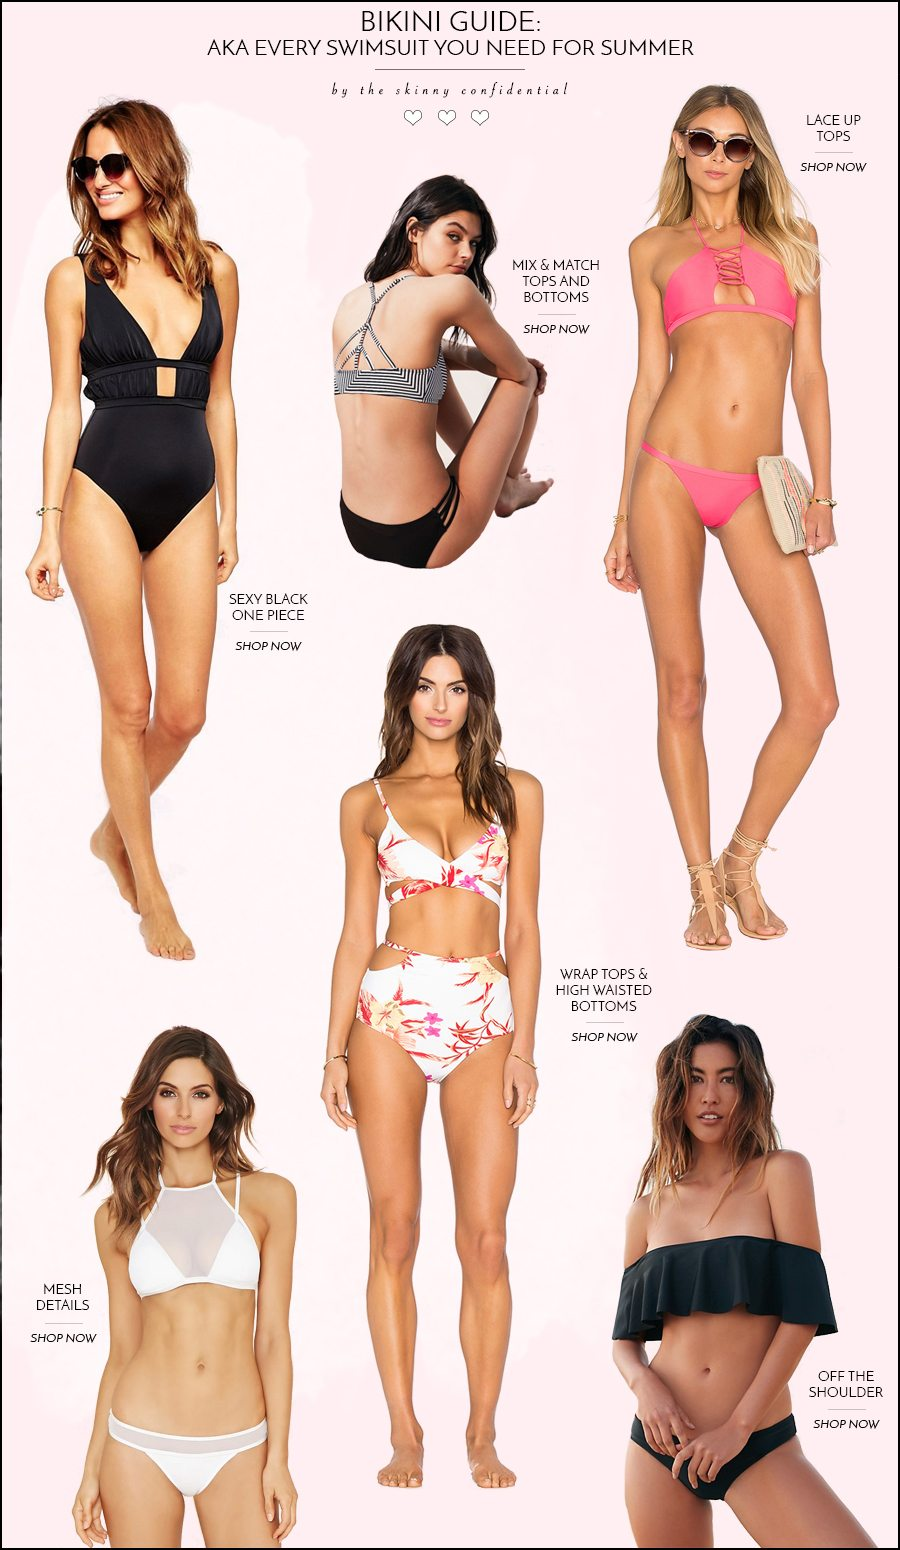 bikini guide | by the skinny confidential